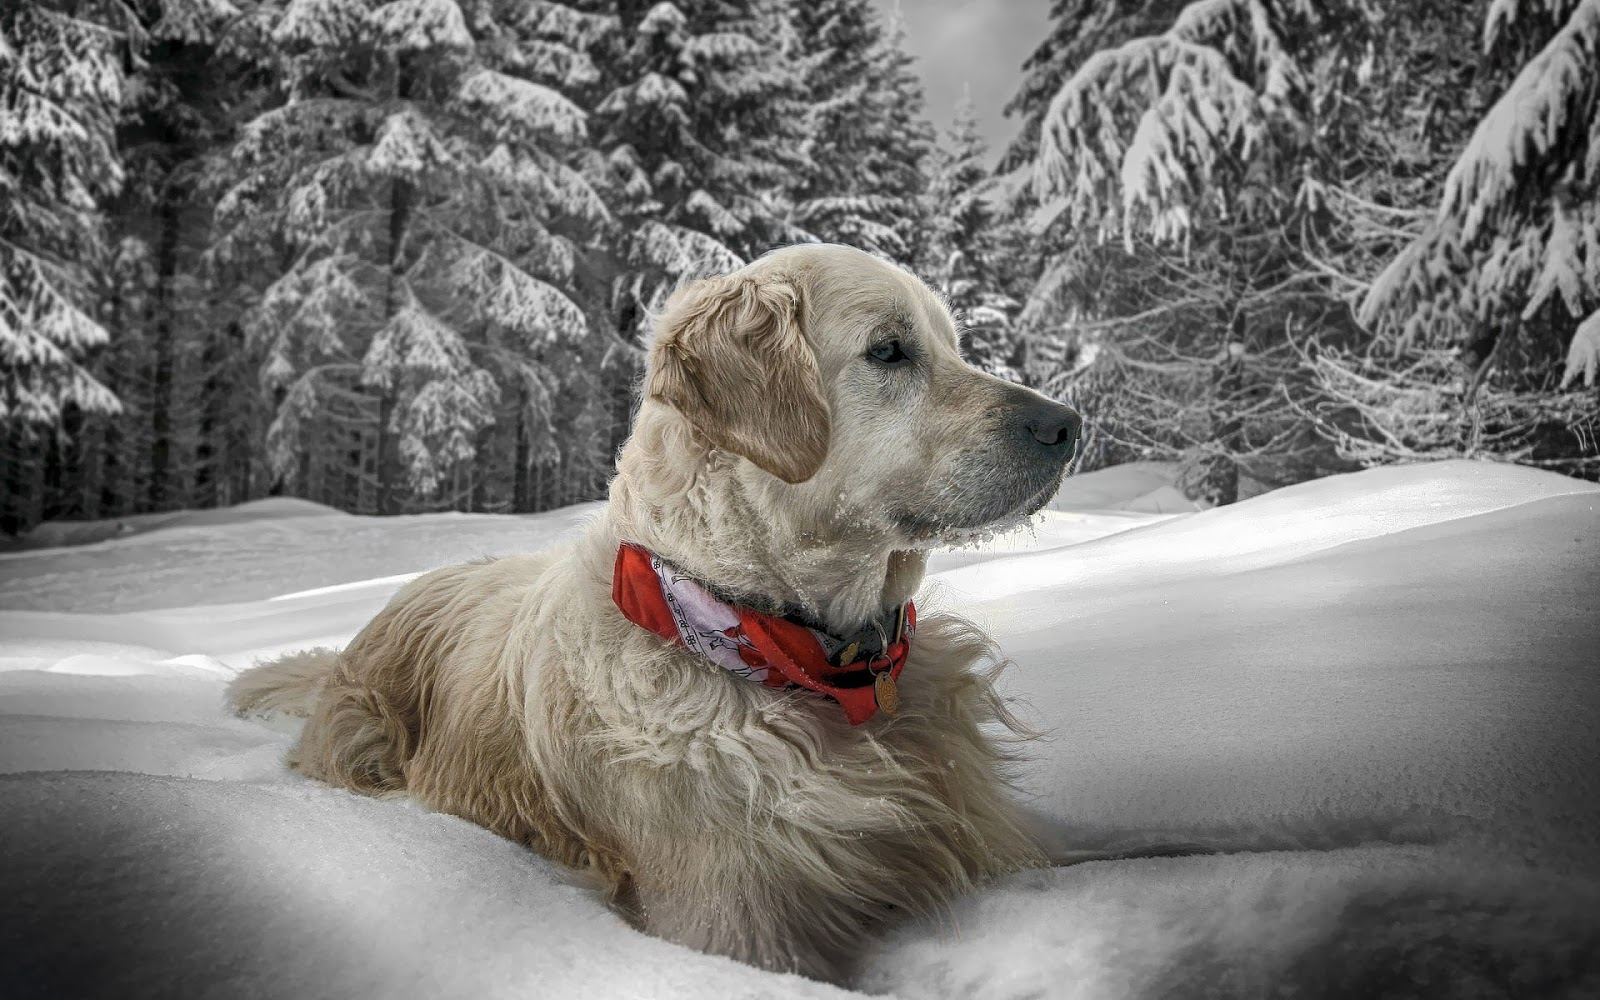 Wallpaper of a dog in the snow HD Animals Wallpapers 1600x1000